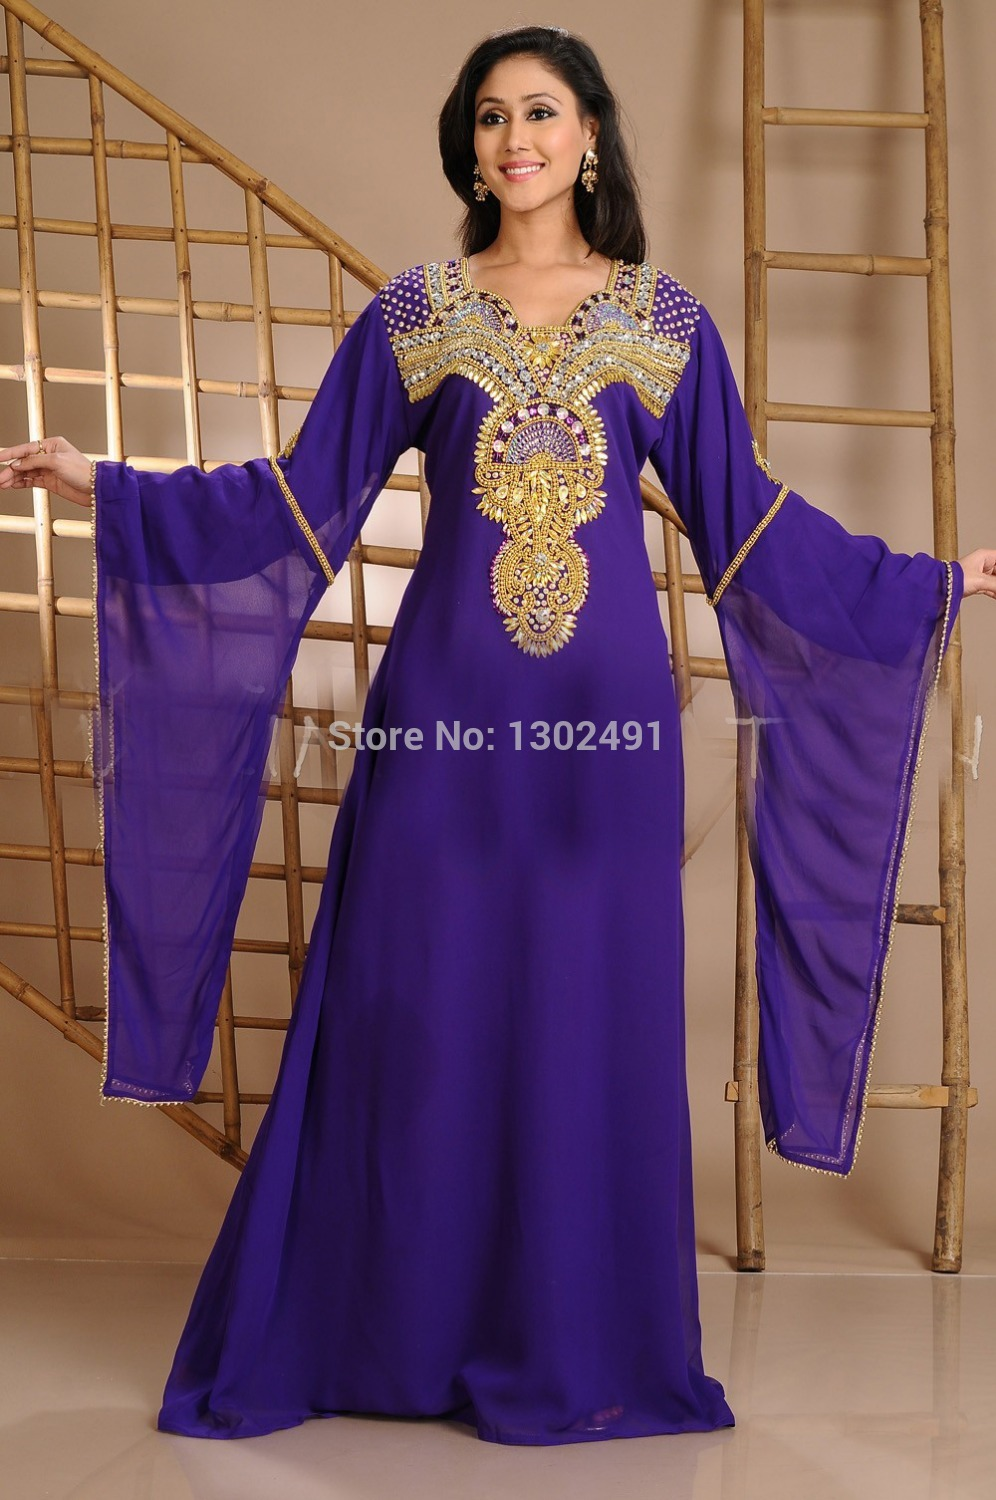 Online Get Cheap Moroccan Clothing -Aliexpress.com ...